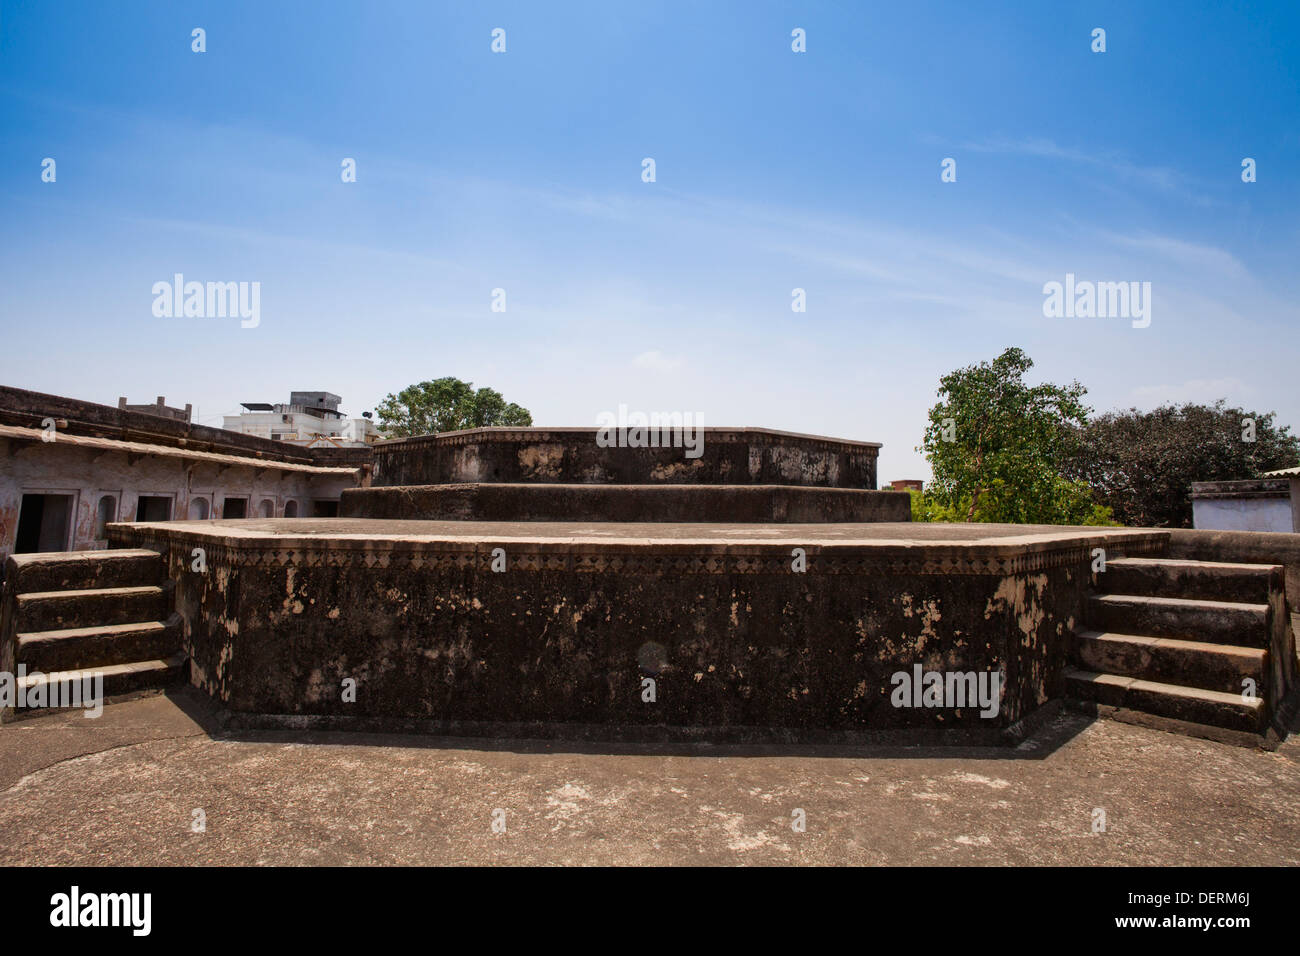 Ruins of a fort, Bhadra Fort, Ahmedabad, Gujarat, India - Stock Image